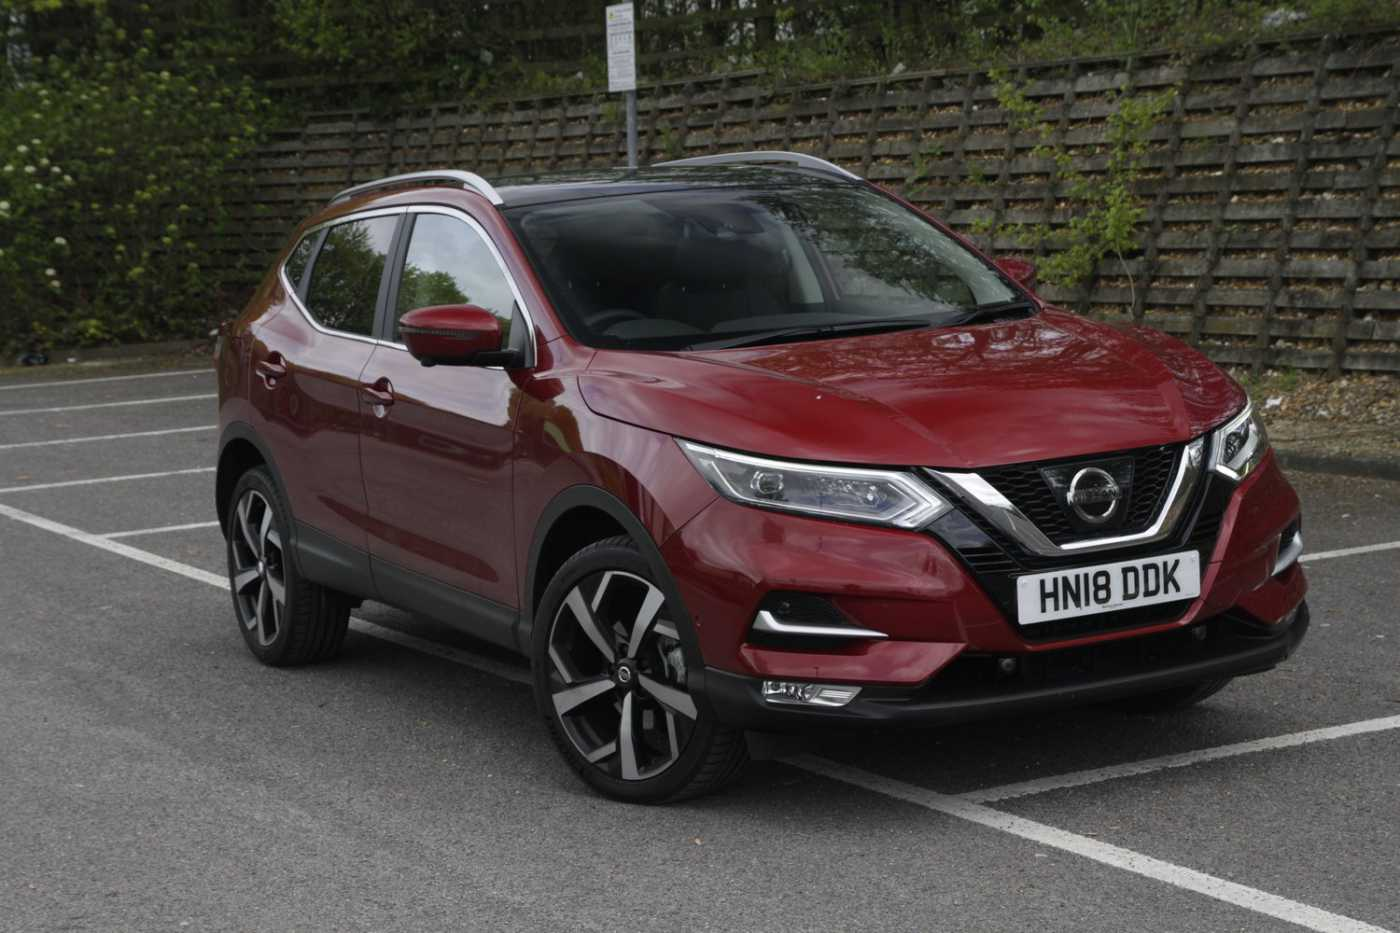 nissan qashqai red for sale in winchester nissan used. Black Bedroom Furniture Sets. Home Design Ideas